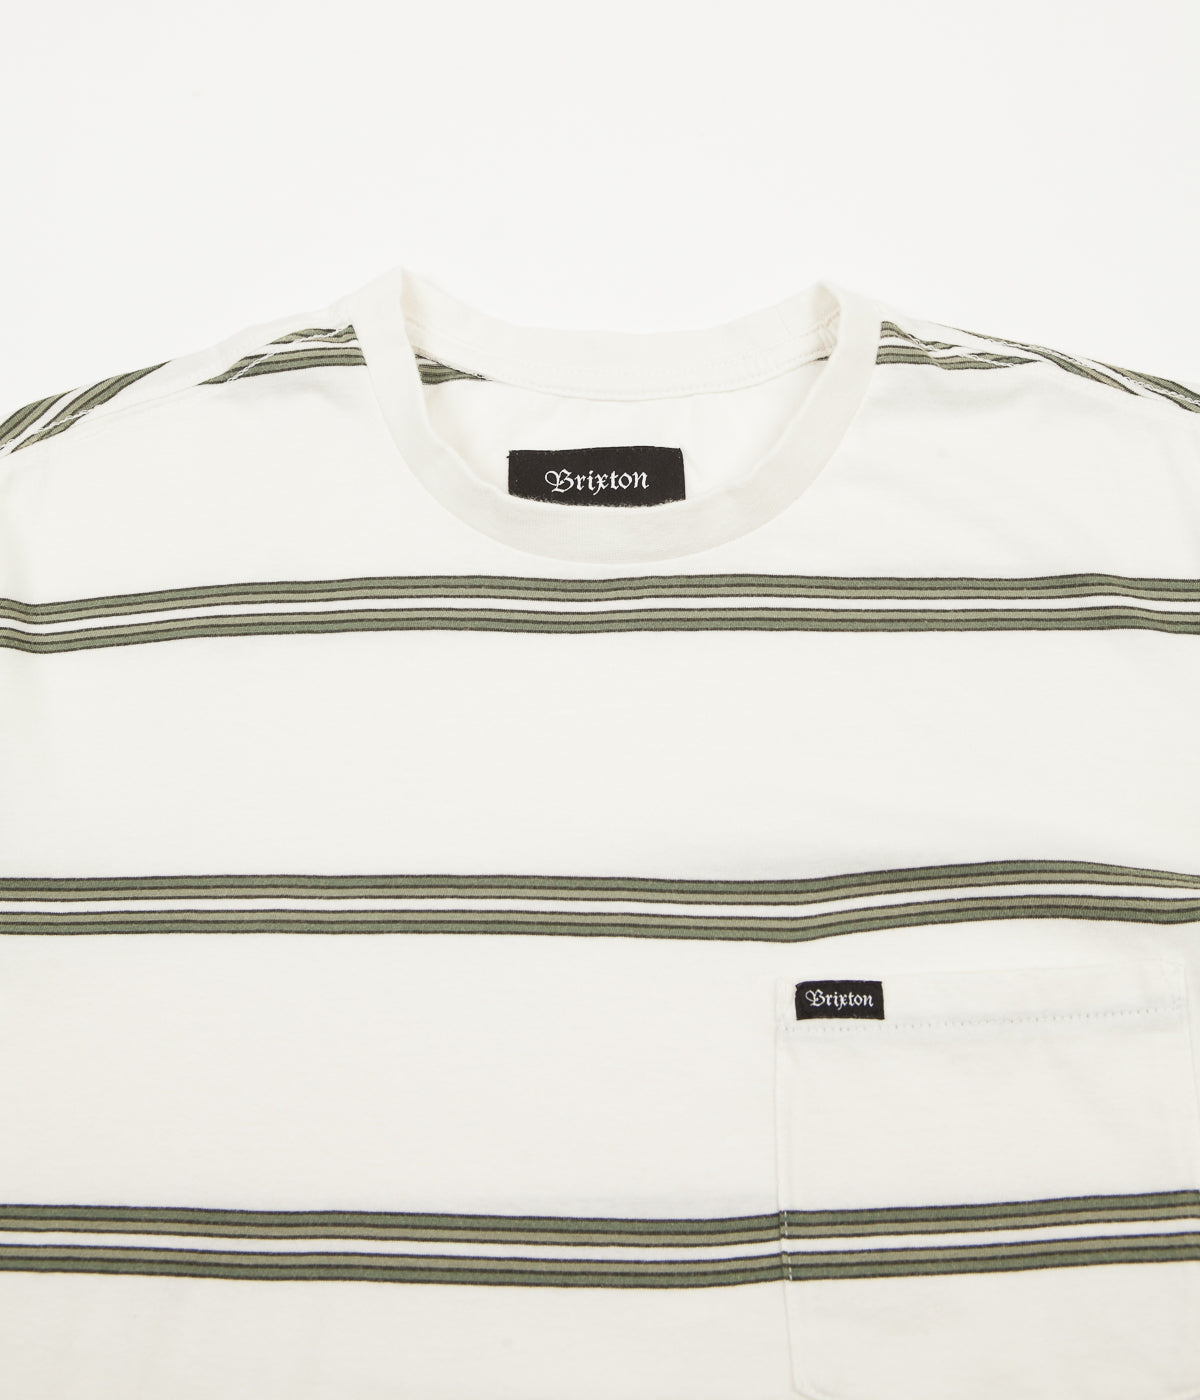 Brixton Hilt Washed Pocket T-Shirt - Off White / Pine